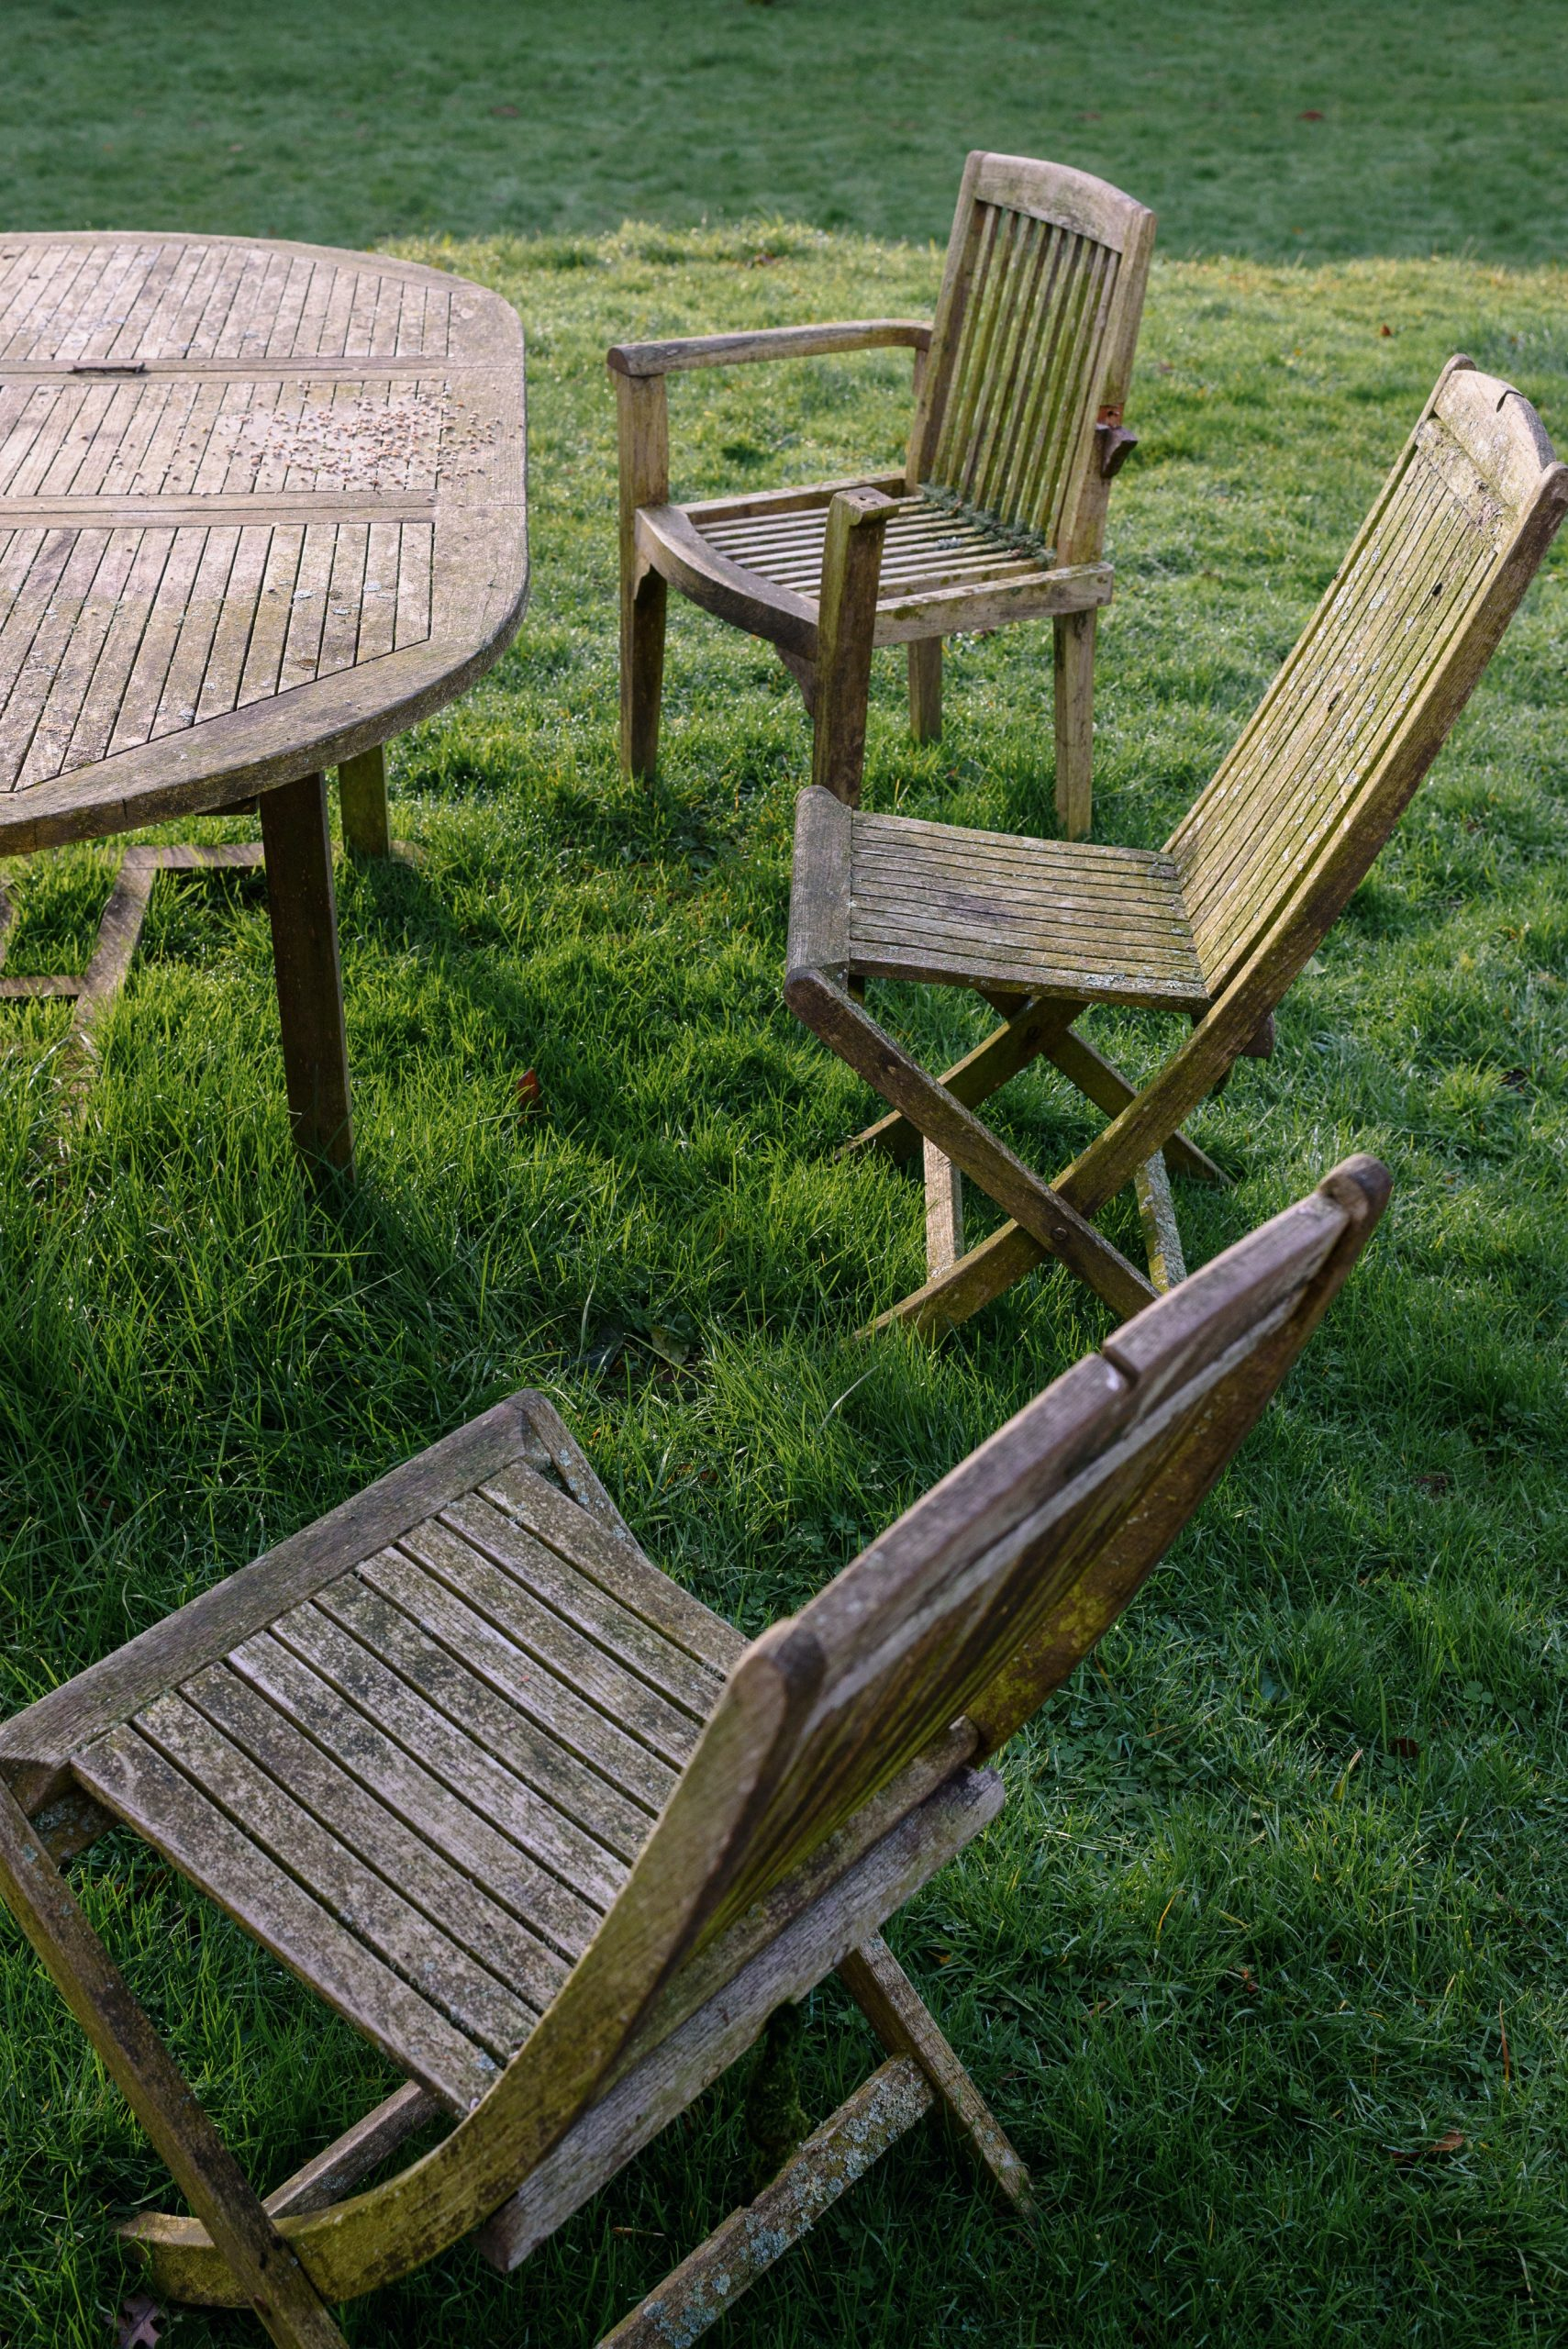 chairs and tables on grassy farm